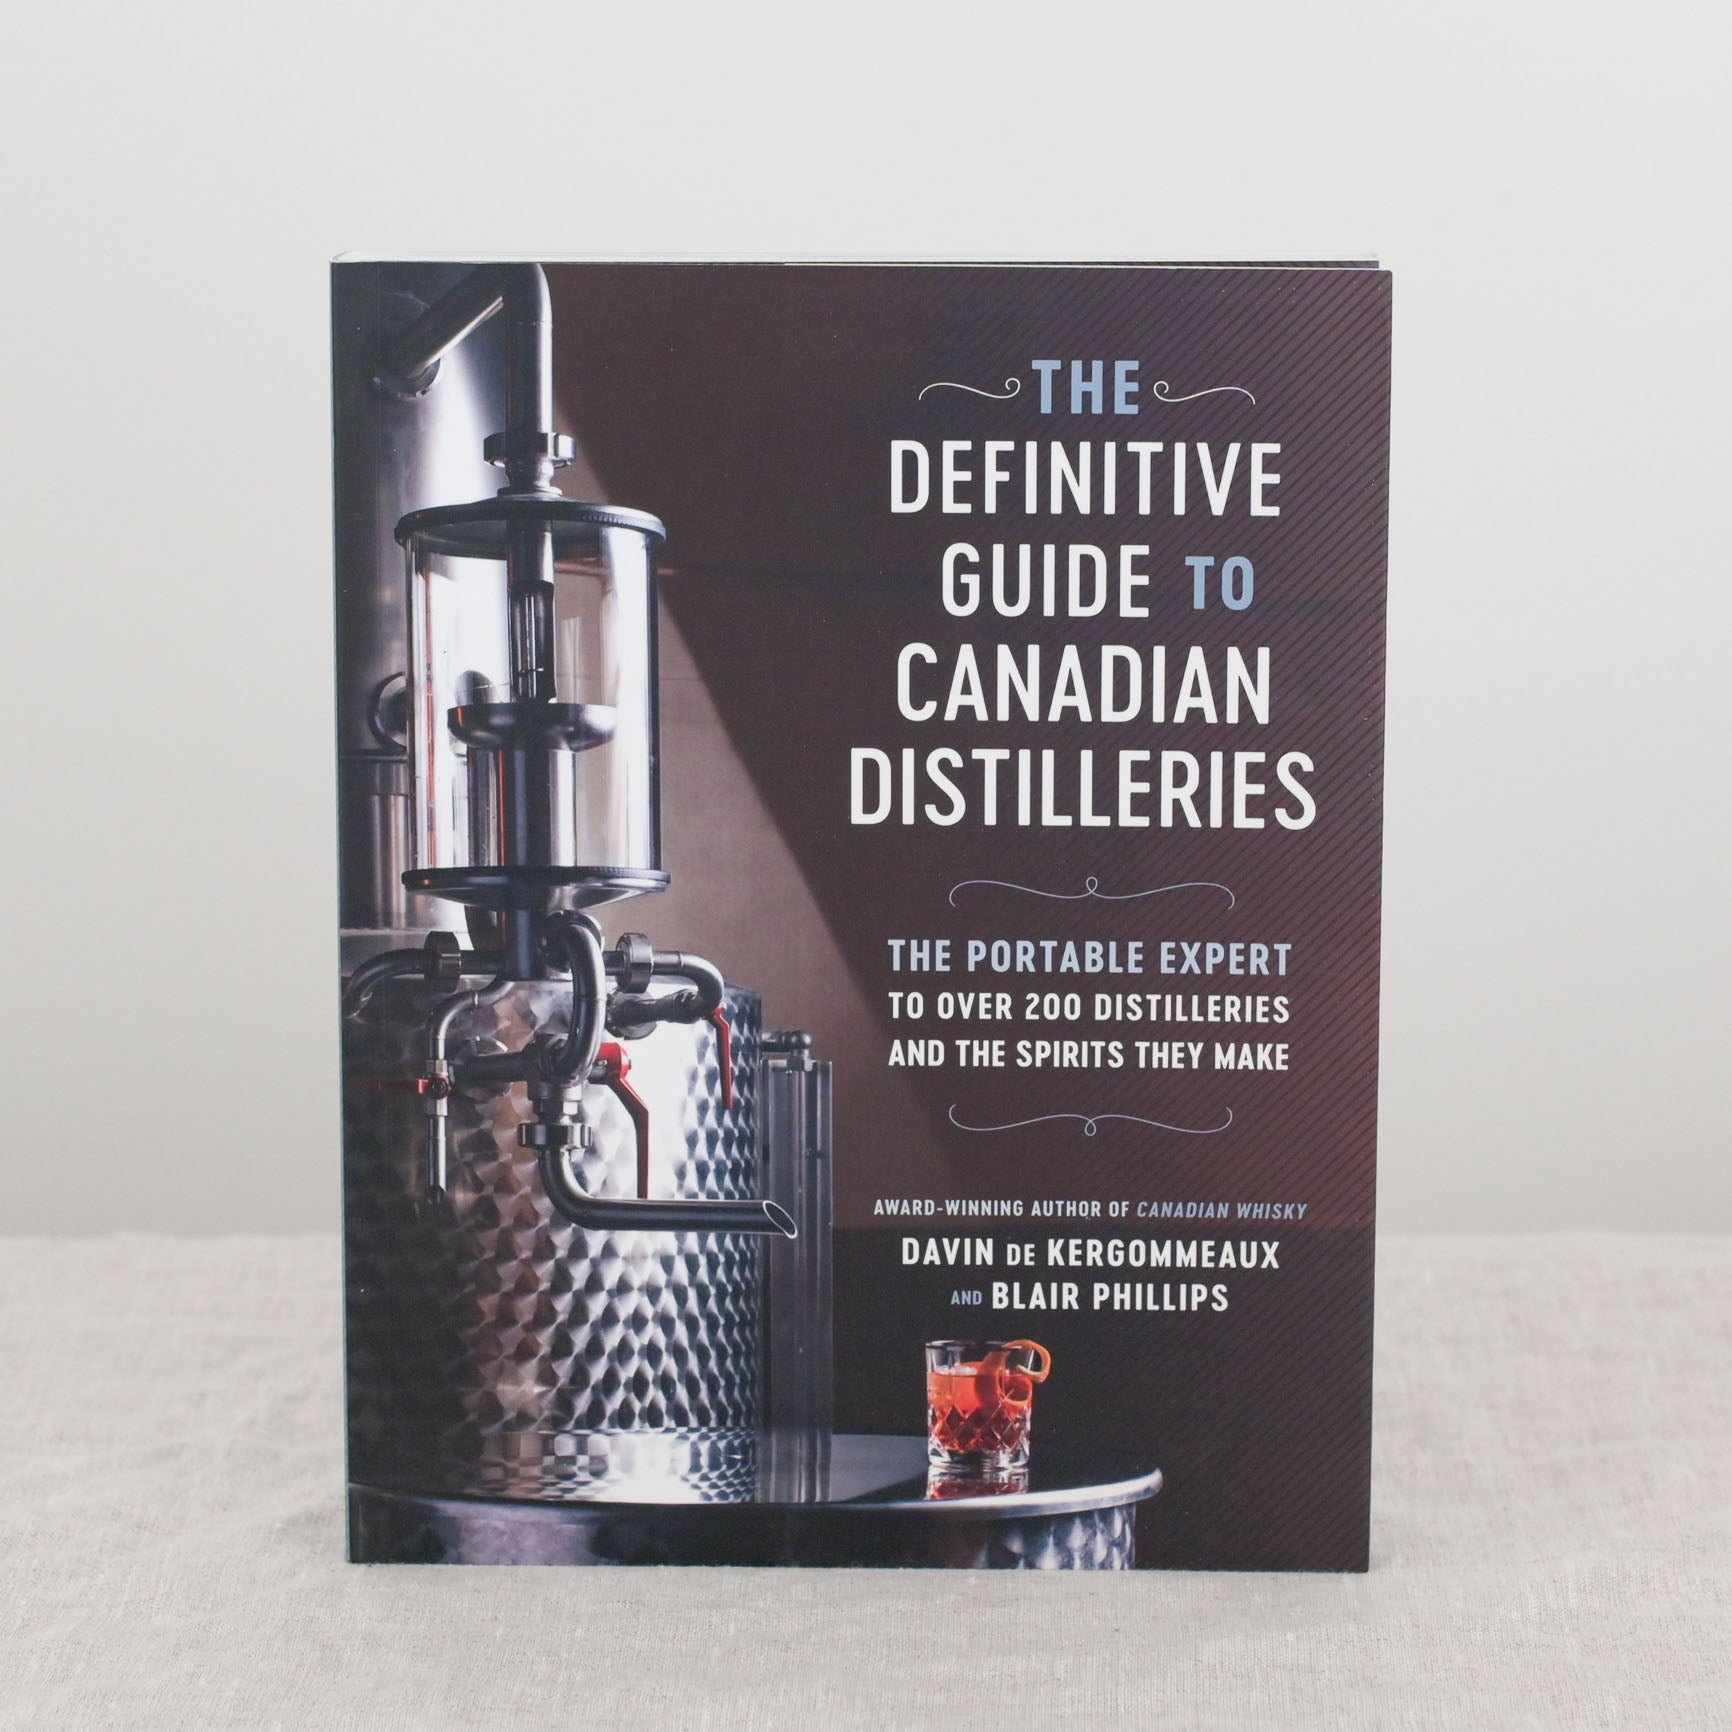 Definitive Guide to Canadian Distilleries